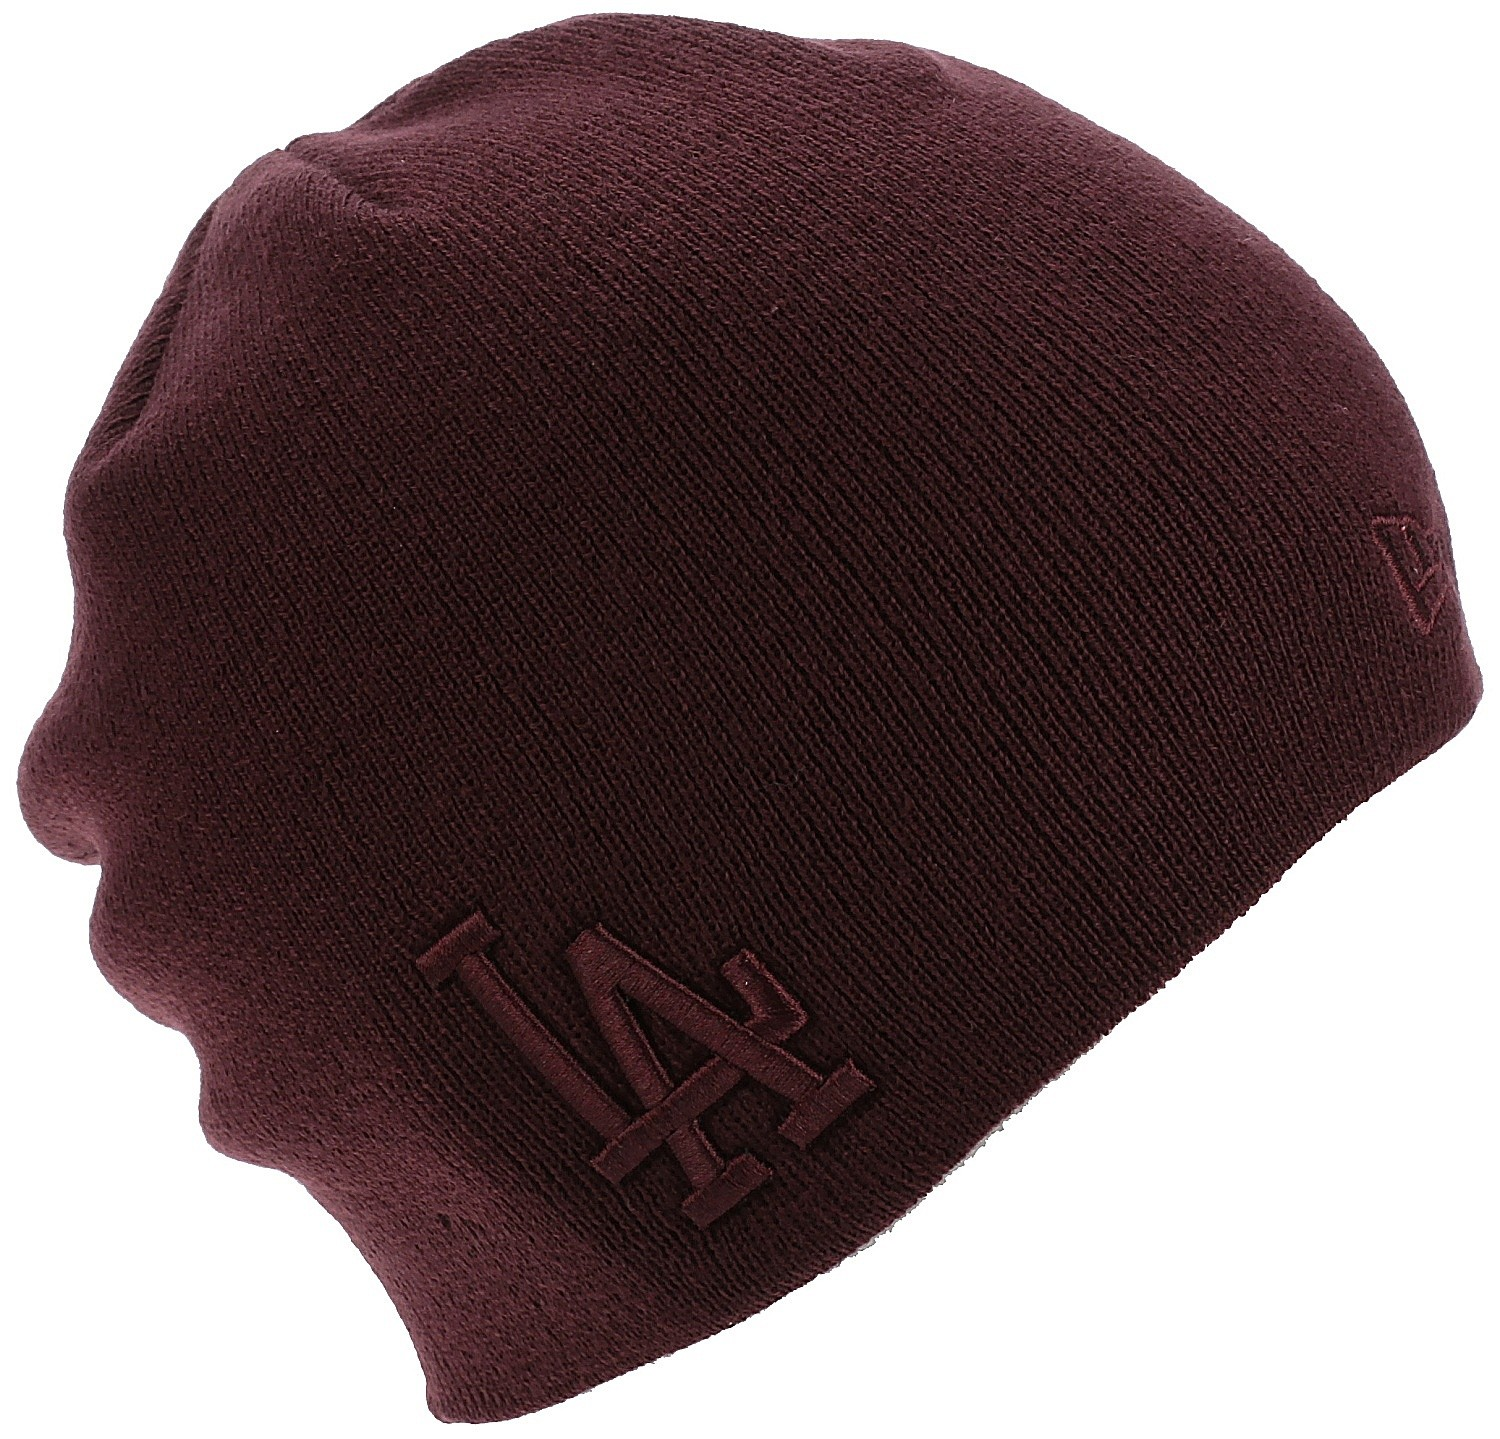 ... knit cuff beanie cap hat nwt 1 of 2only 3 available de92e f7d01  where  to buy beanie new era seasonal skull mlb los angeles dodgers maroon 6763d  785a4 d940ffa1e95b